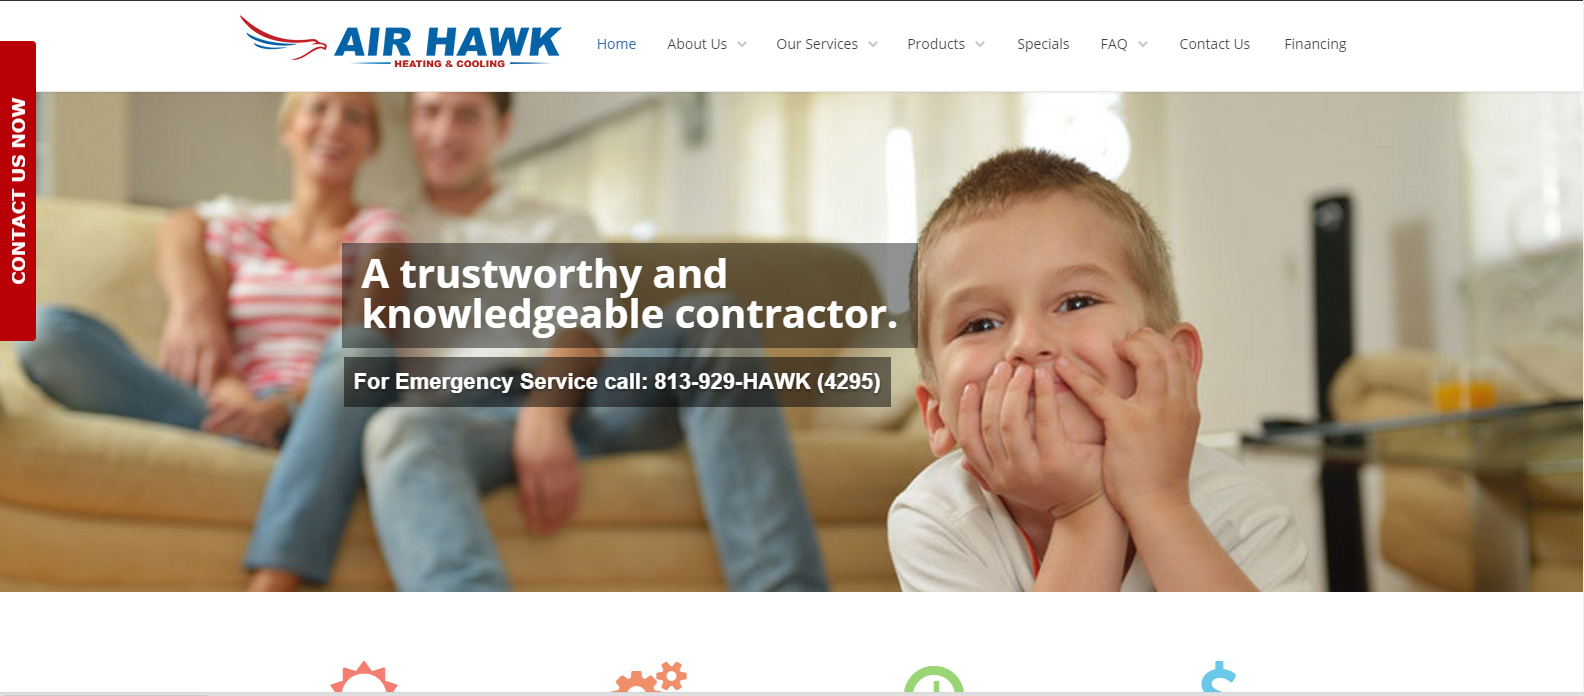 Tampa Bay Web Design Firm client 2